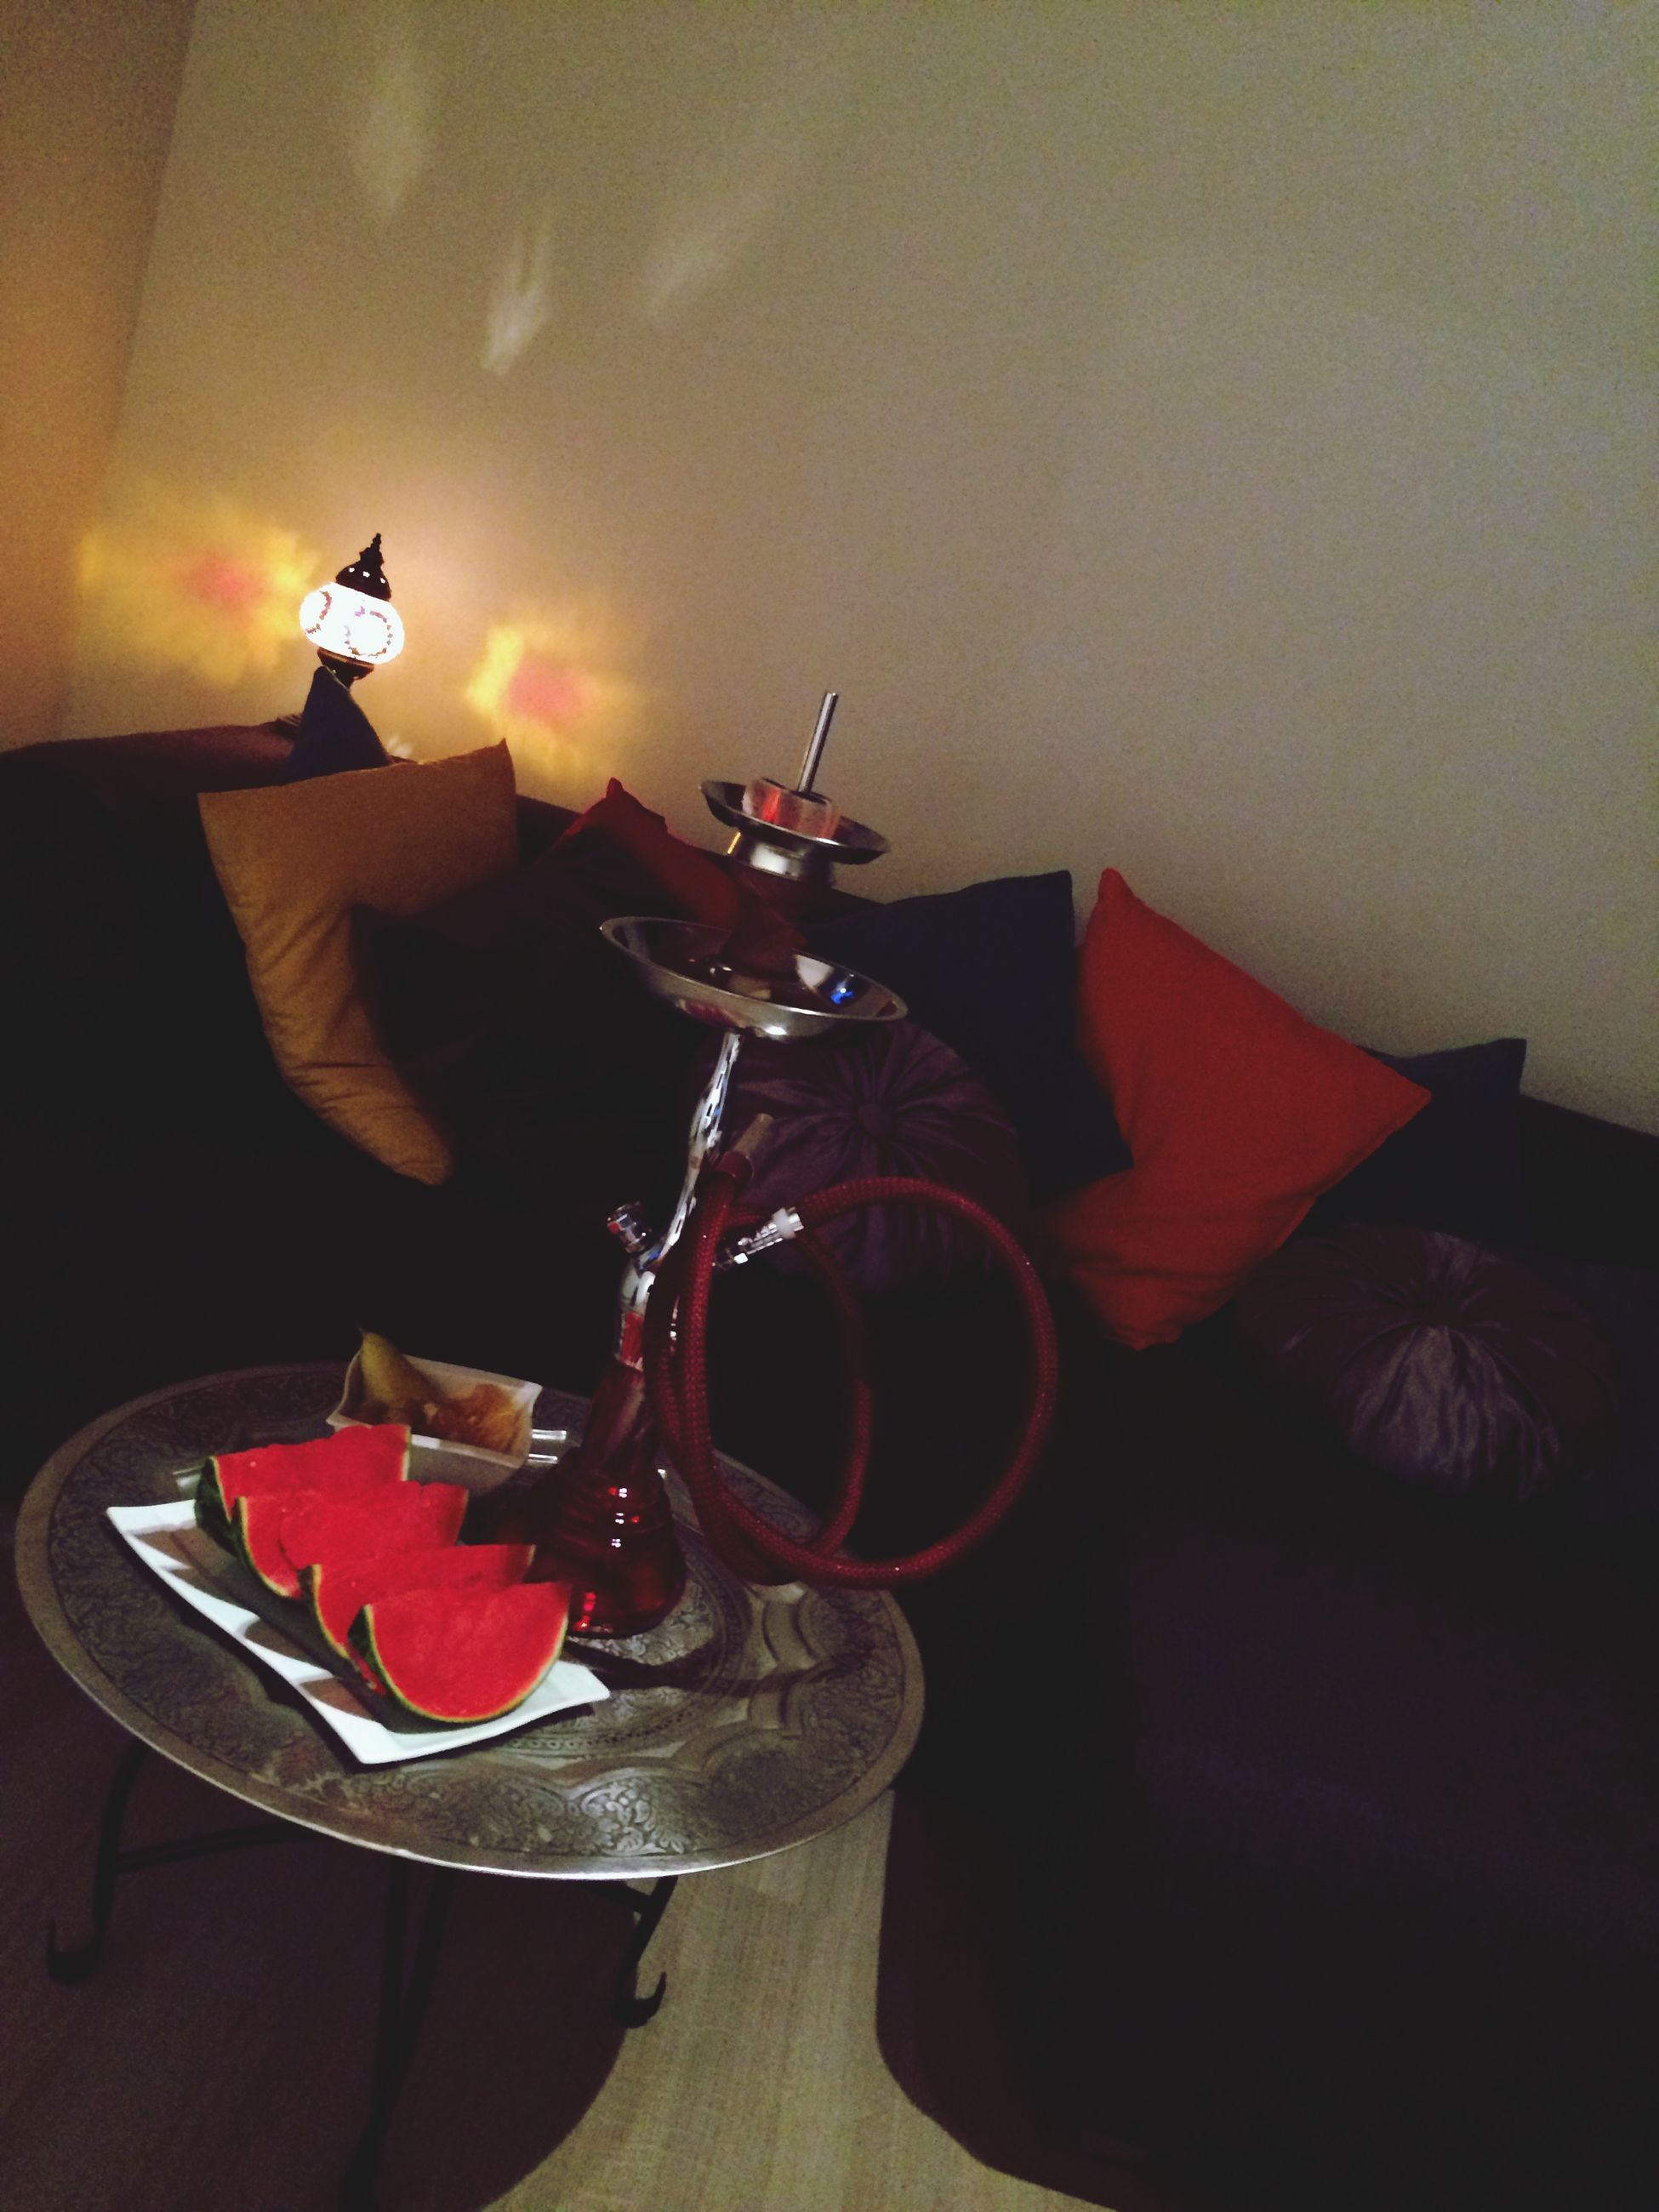 indoors, home interior, table, red, transportation, no people, still life, toy, mode of transport, decoration, lighting equipment, sunlight, close-up, low angle view, wall - building feature, shadow, hanging, day, built structure, glass - material